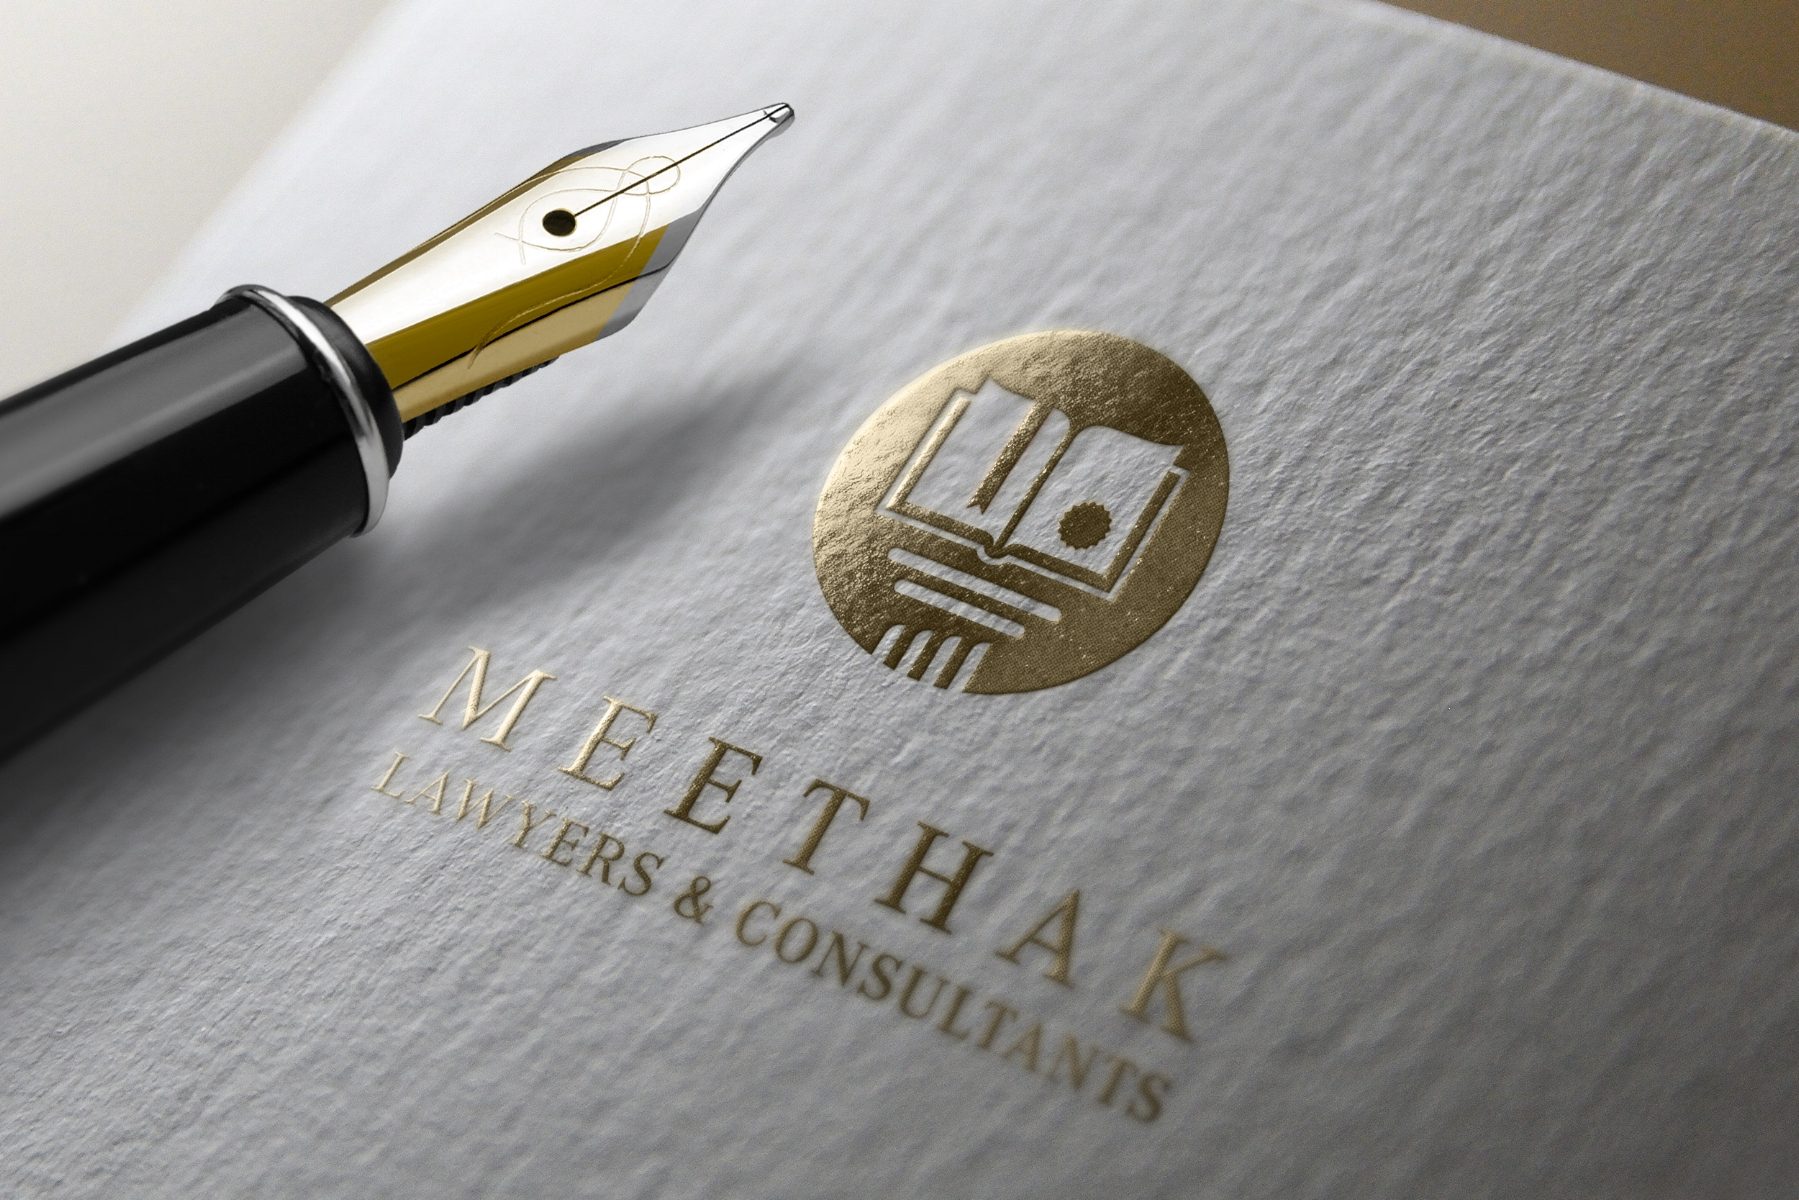 Meethak Law Firm